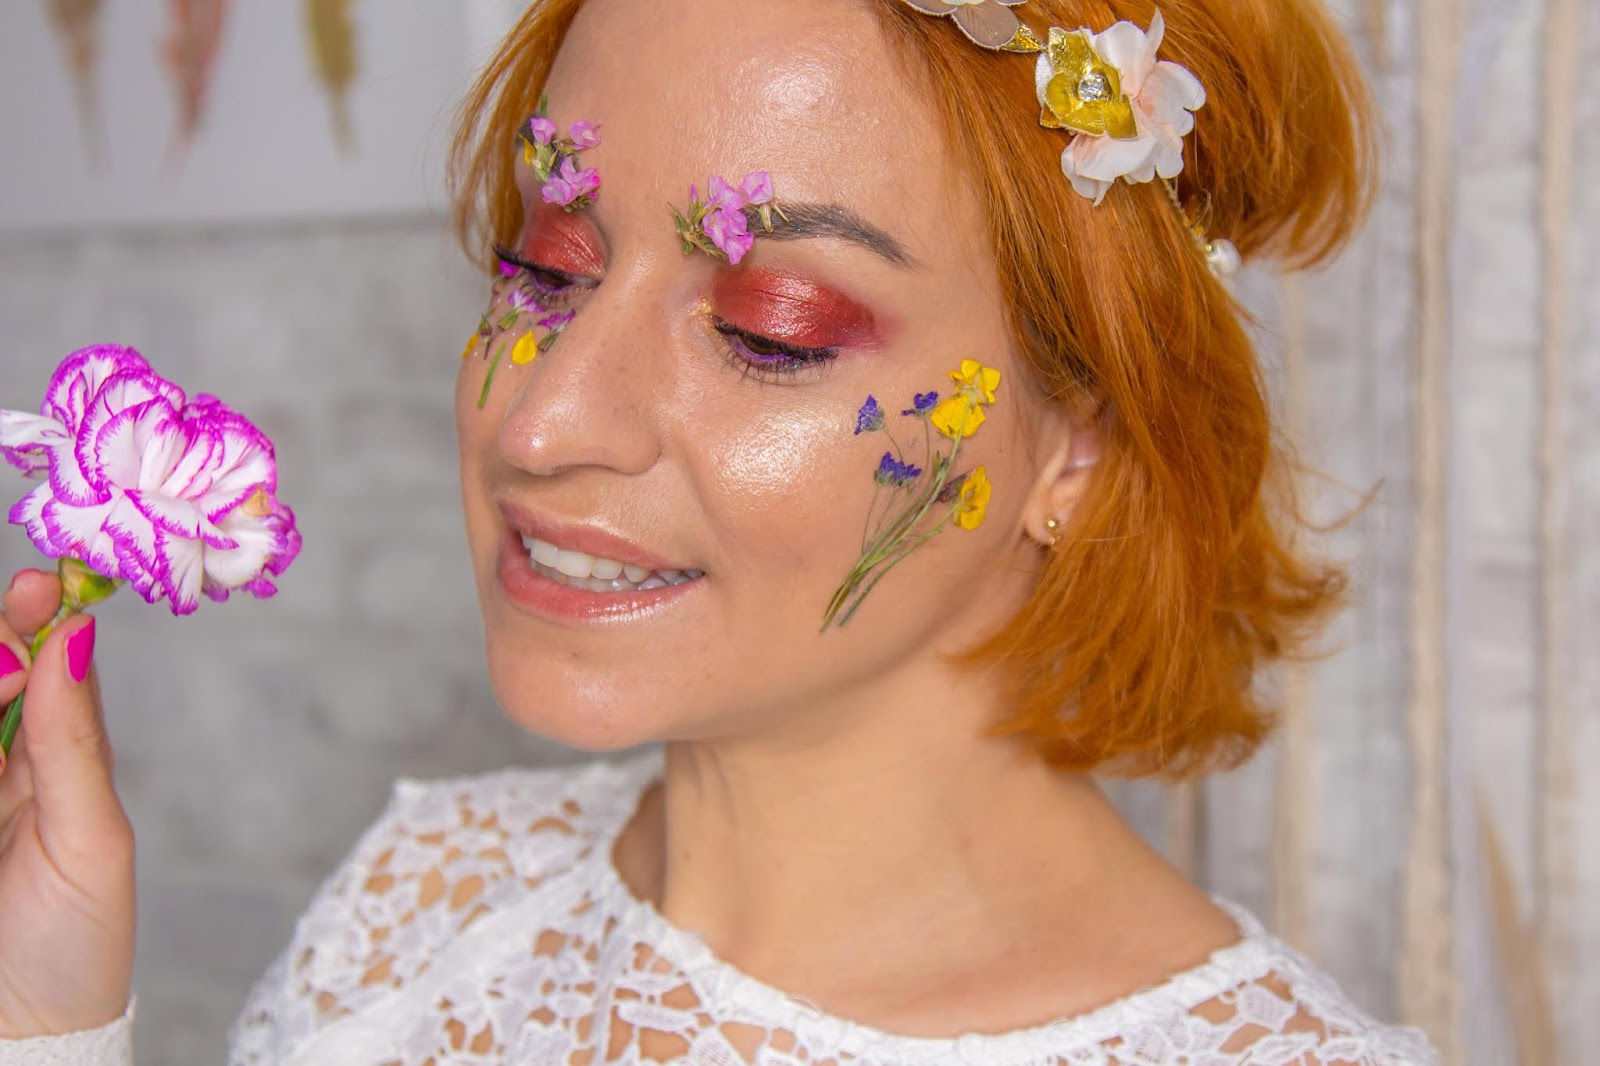 maquillage-artistique-fleurs-sechees-glossy